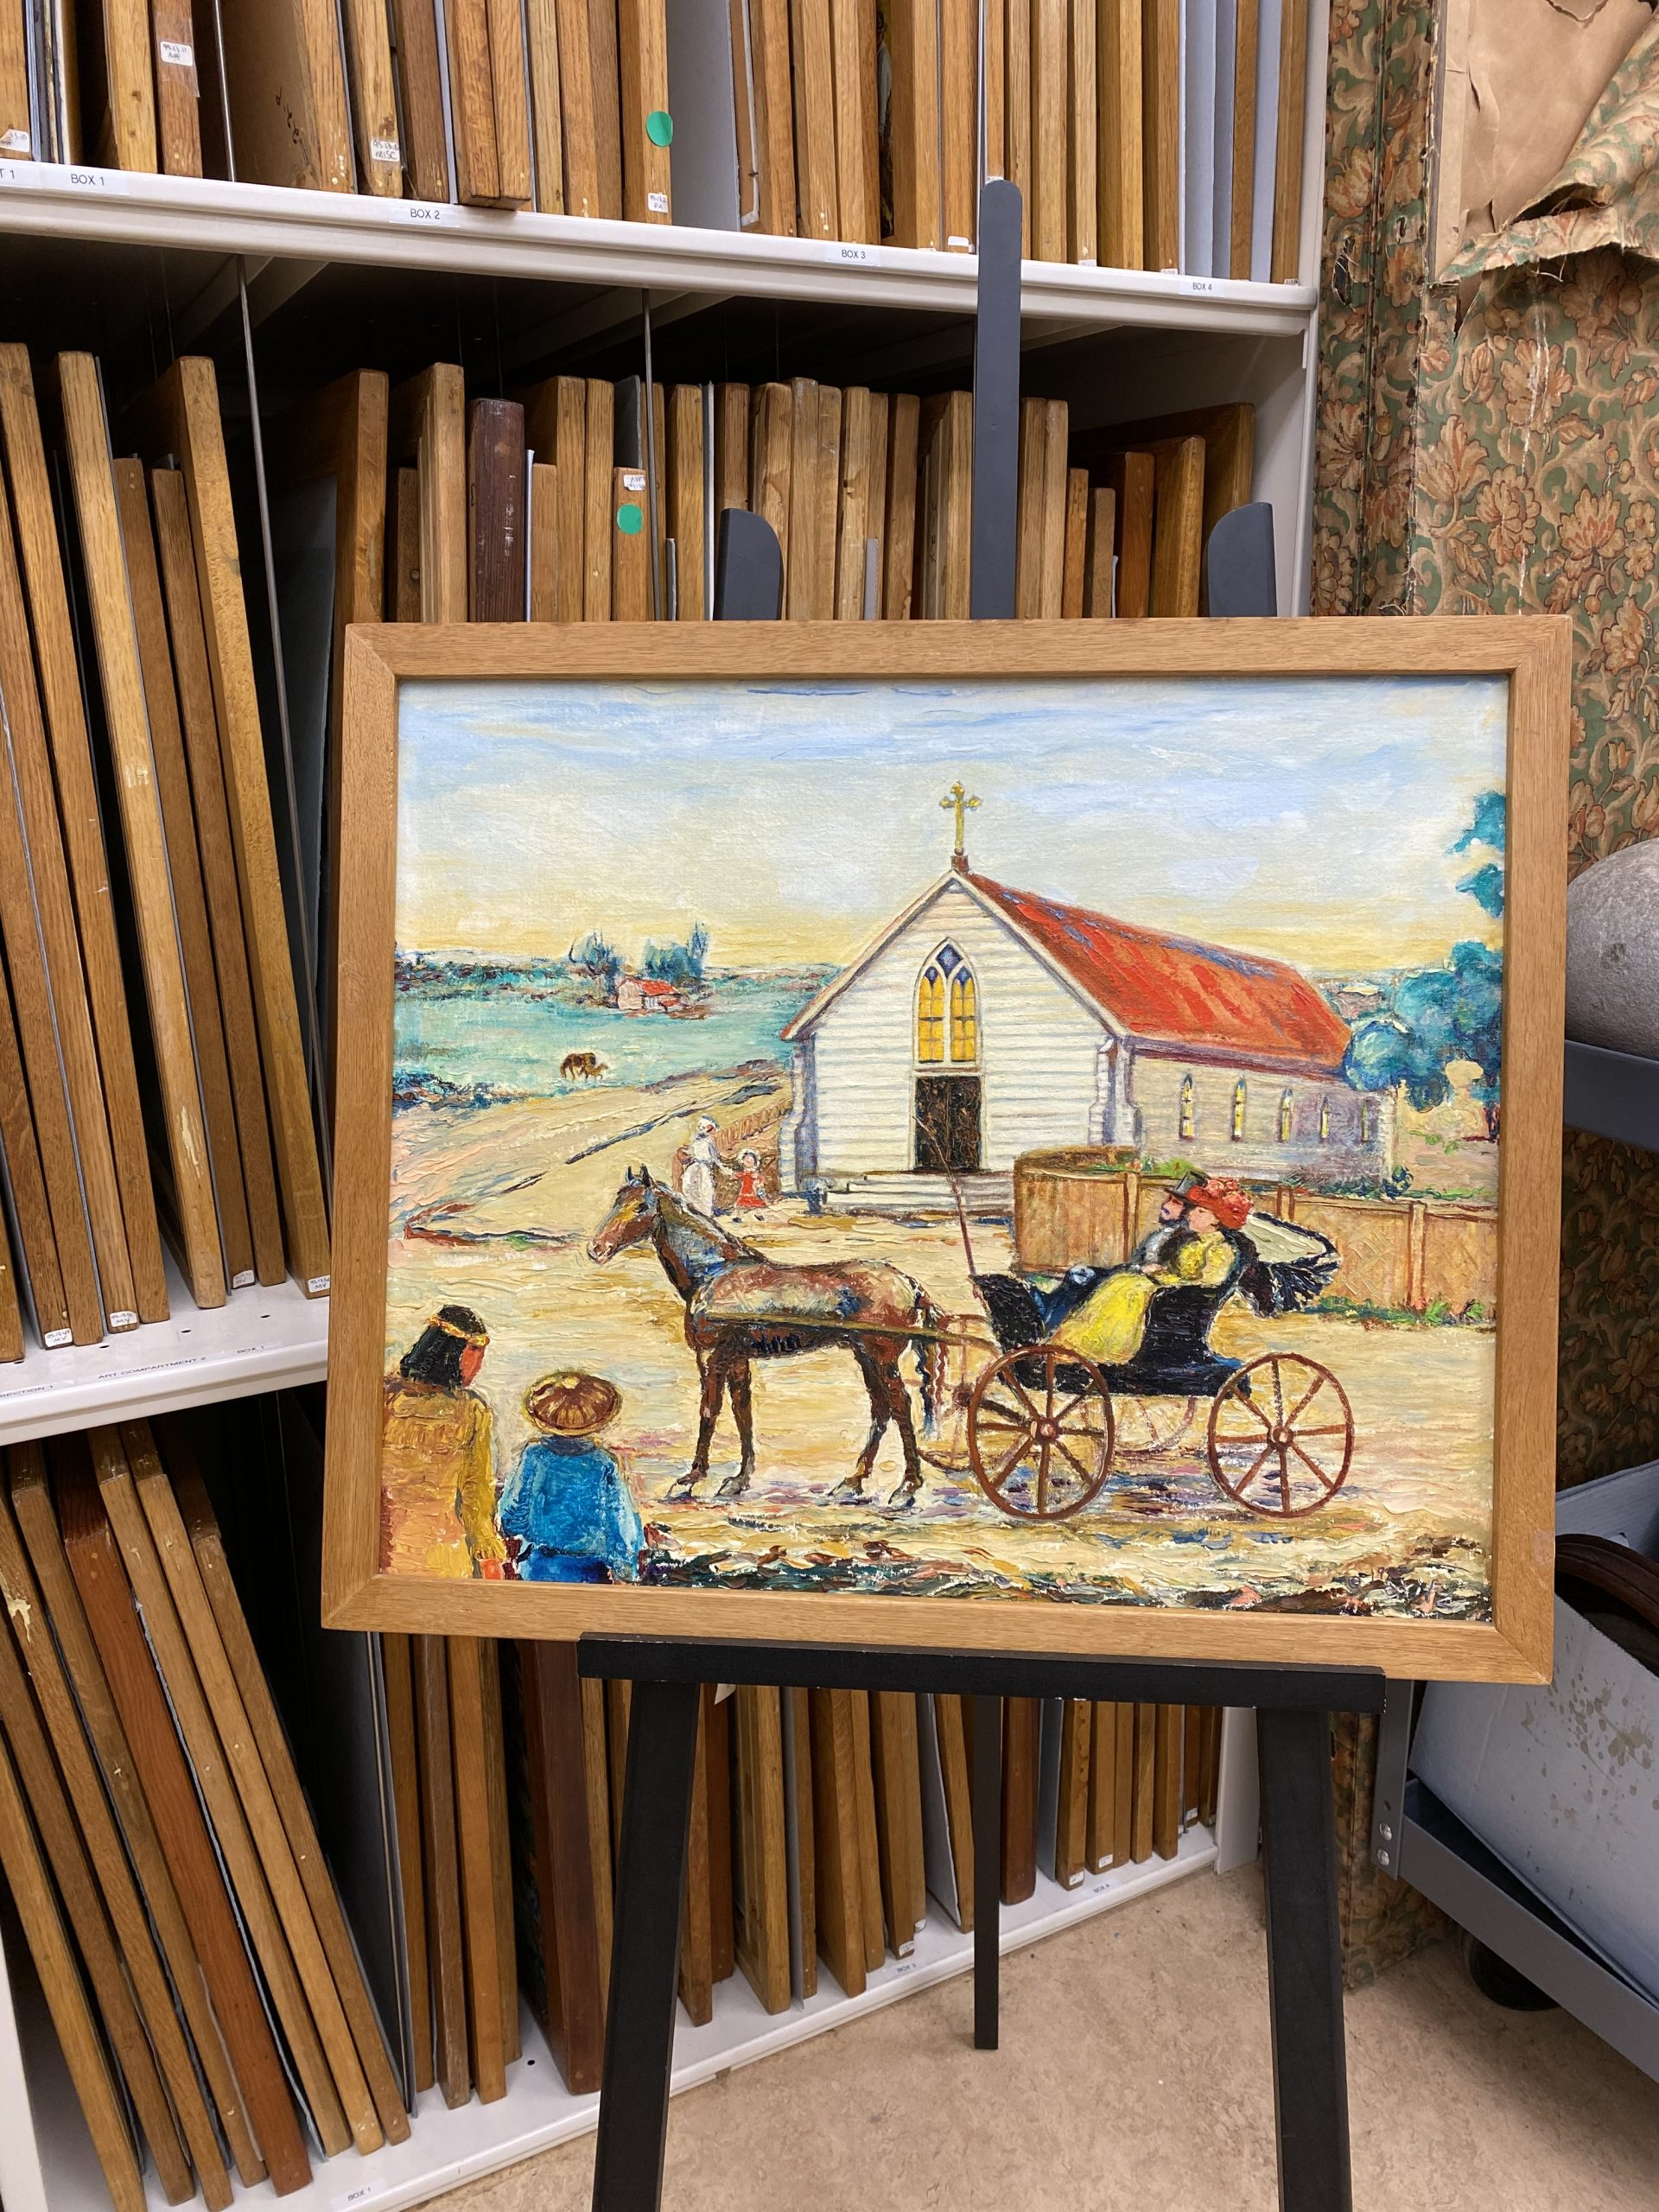 Anna Knapp Fitz art is accessioned.